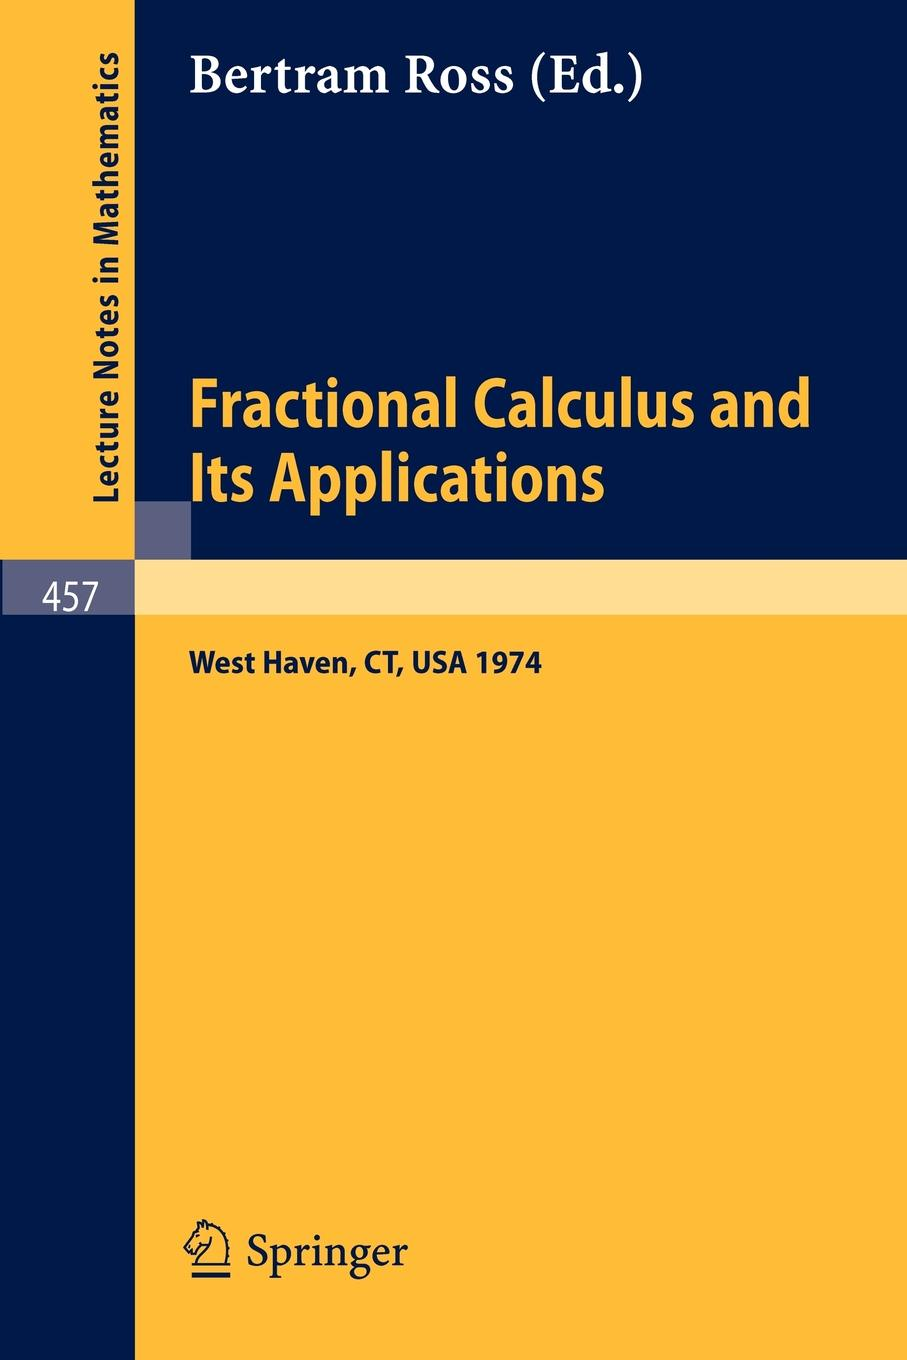 Fractional Calculus and Its Applications. Proceedings of the International Conference held at the University of New Haven, June 1974 stevan pilipovic fractional calculus with applications in mechanics wave propagation impact and variational principles